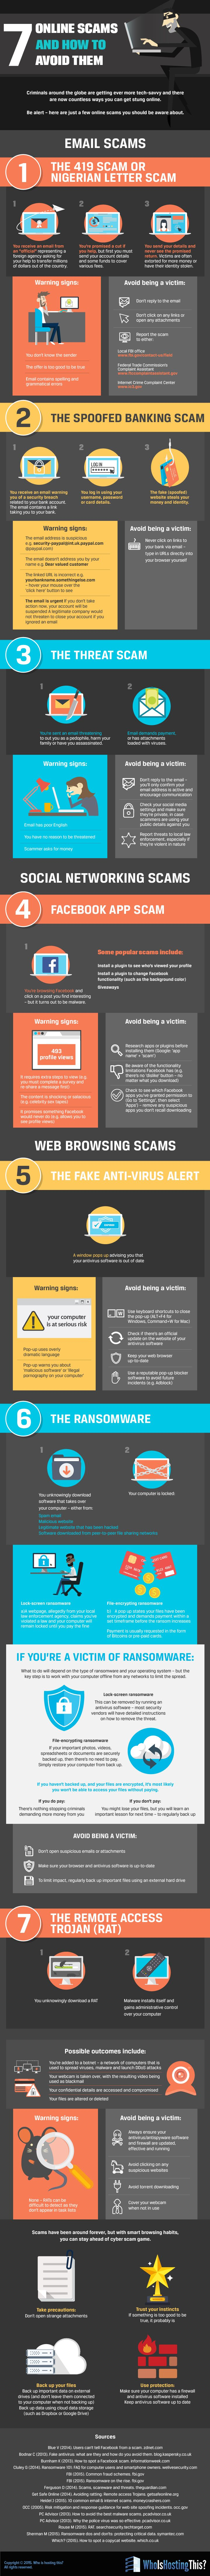 7 Online Scams and How to Avoid Them #infographic #Internet #Hacking